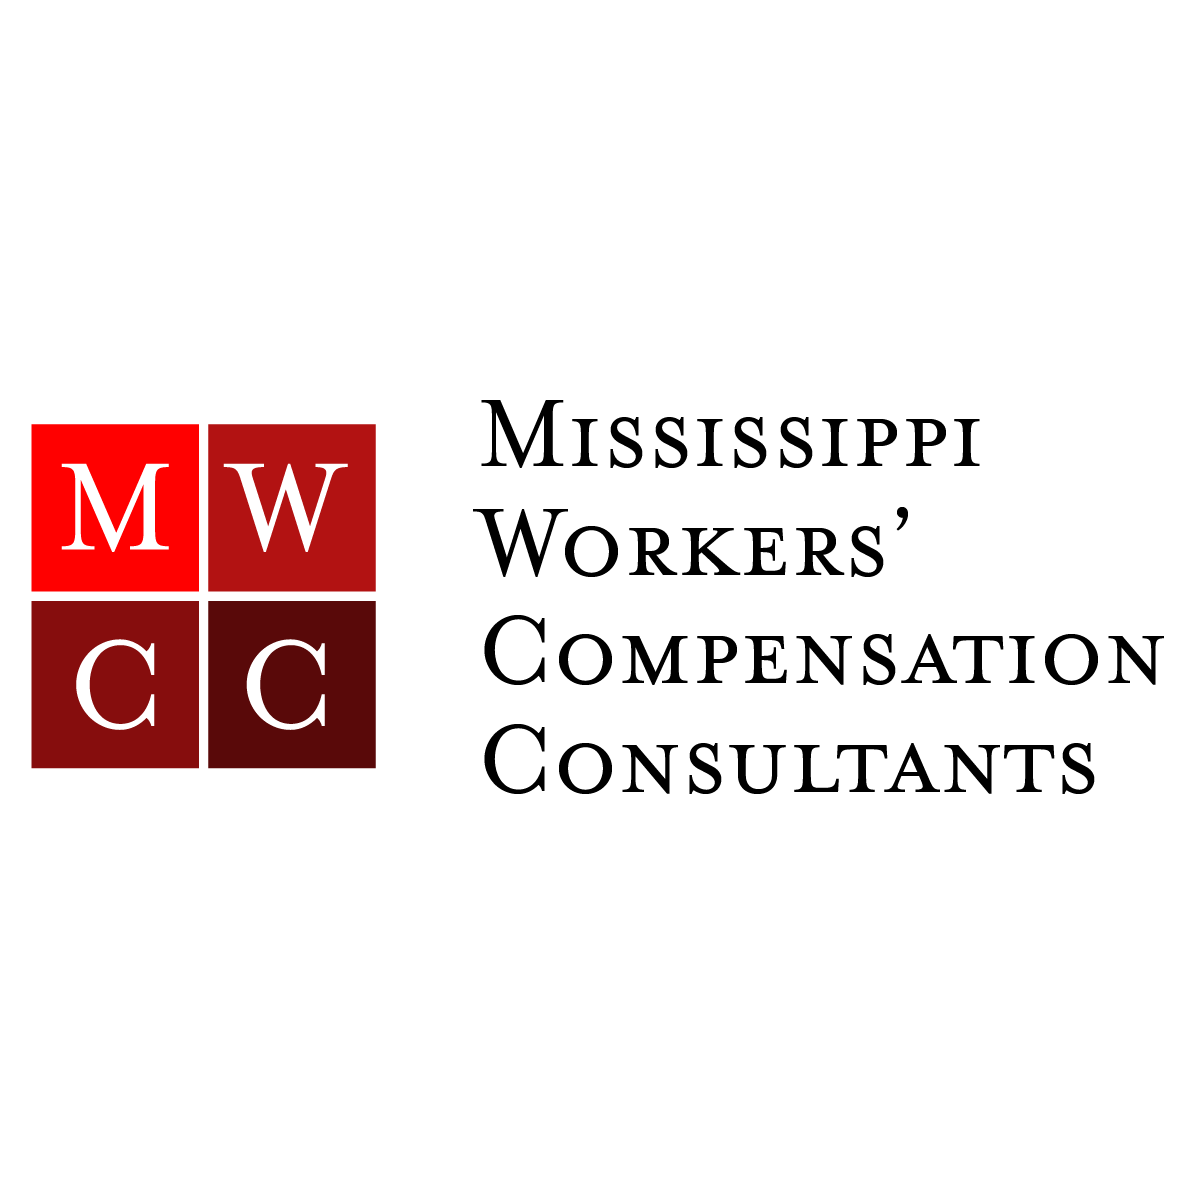 Mississippi Workers' Compensation Consultants